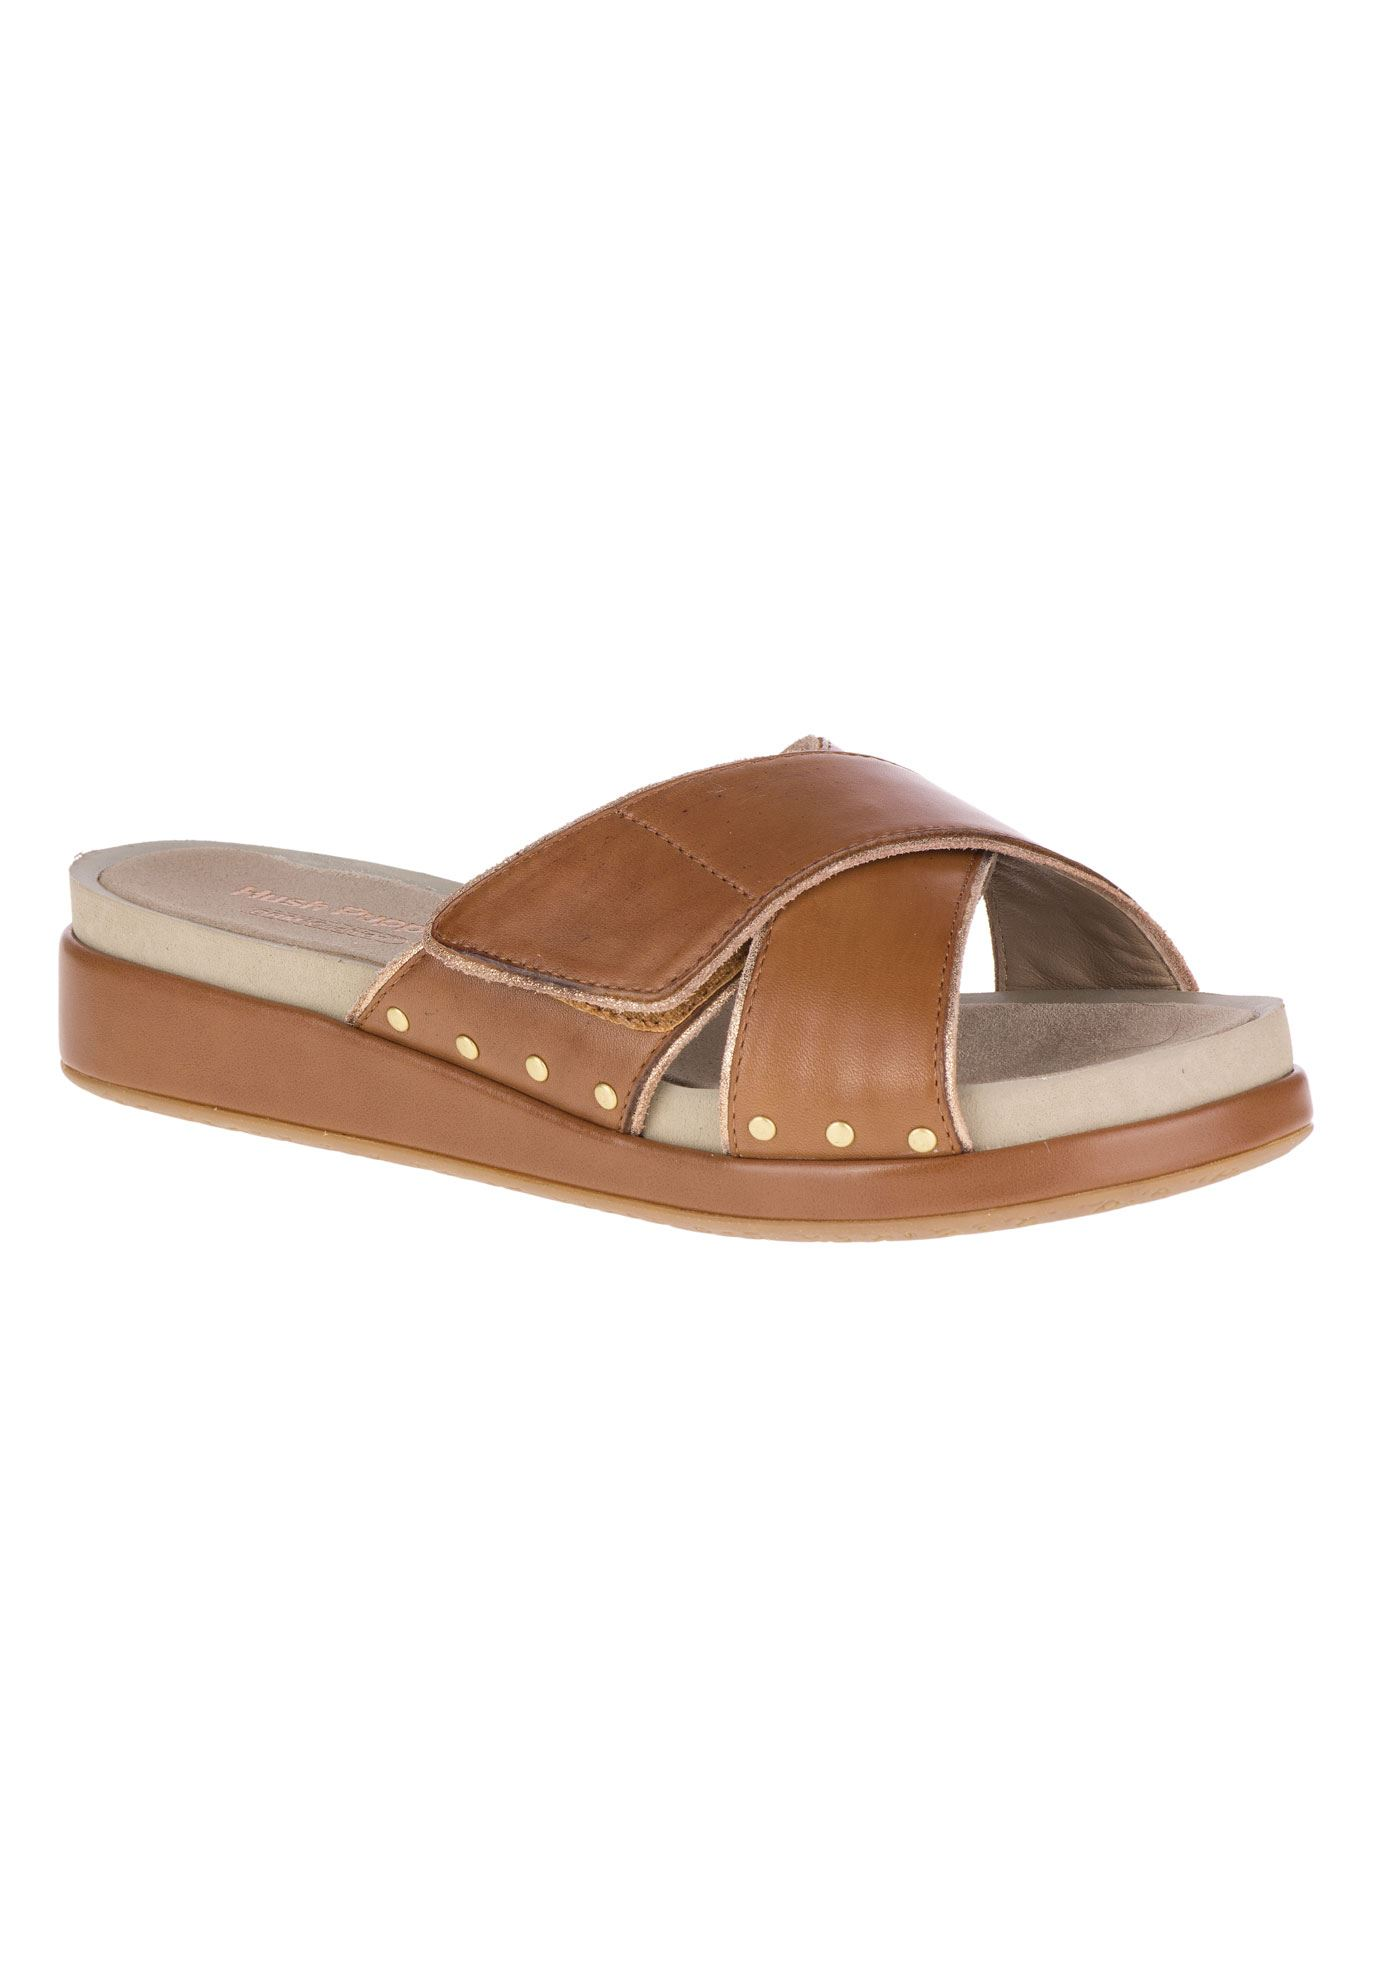 Chrysta Xband Slide Sandals by Hush Puppies®,